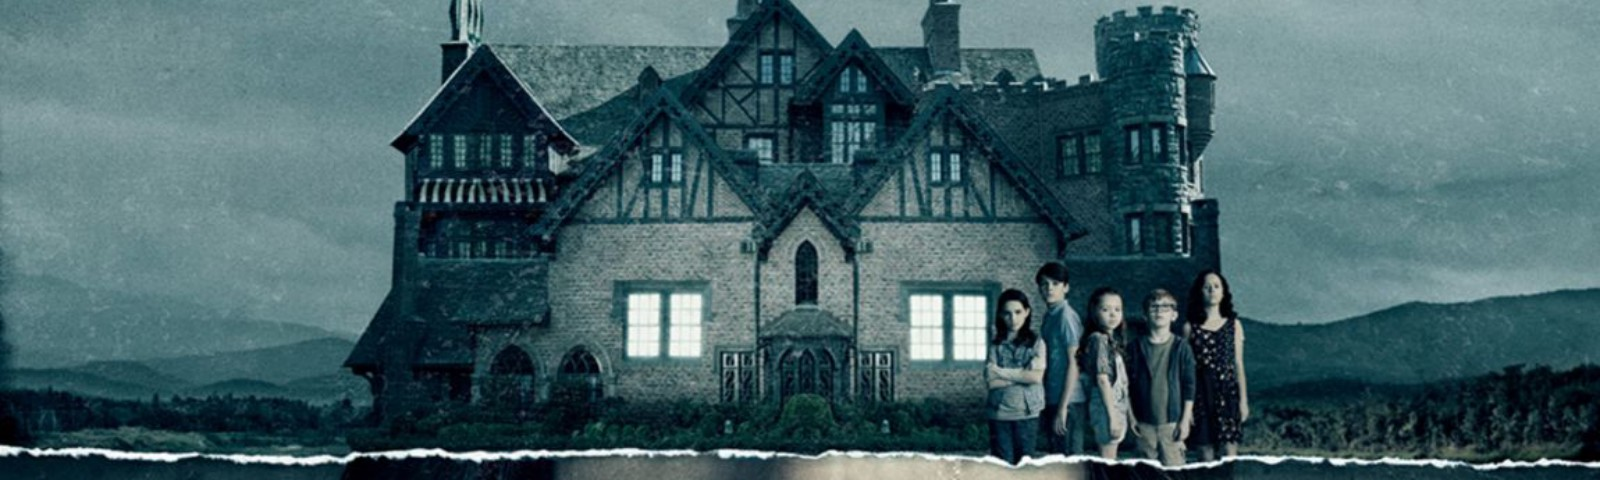 Extend Your Stay At The Haunting Of Hill House Blu Review By Jon Partridge Cinapse